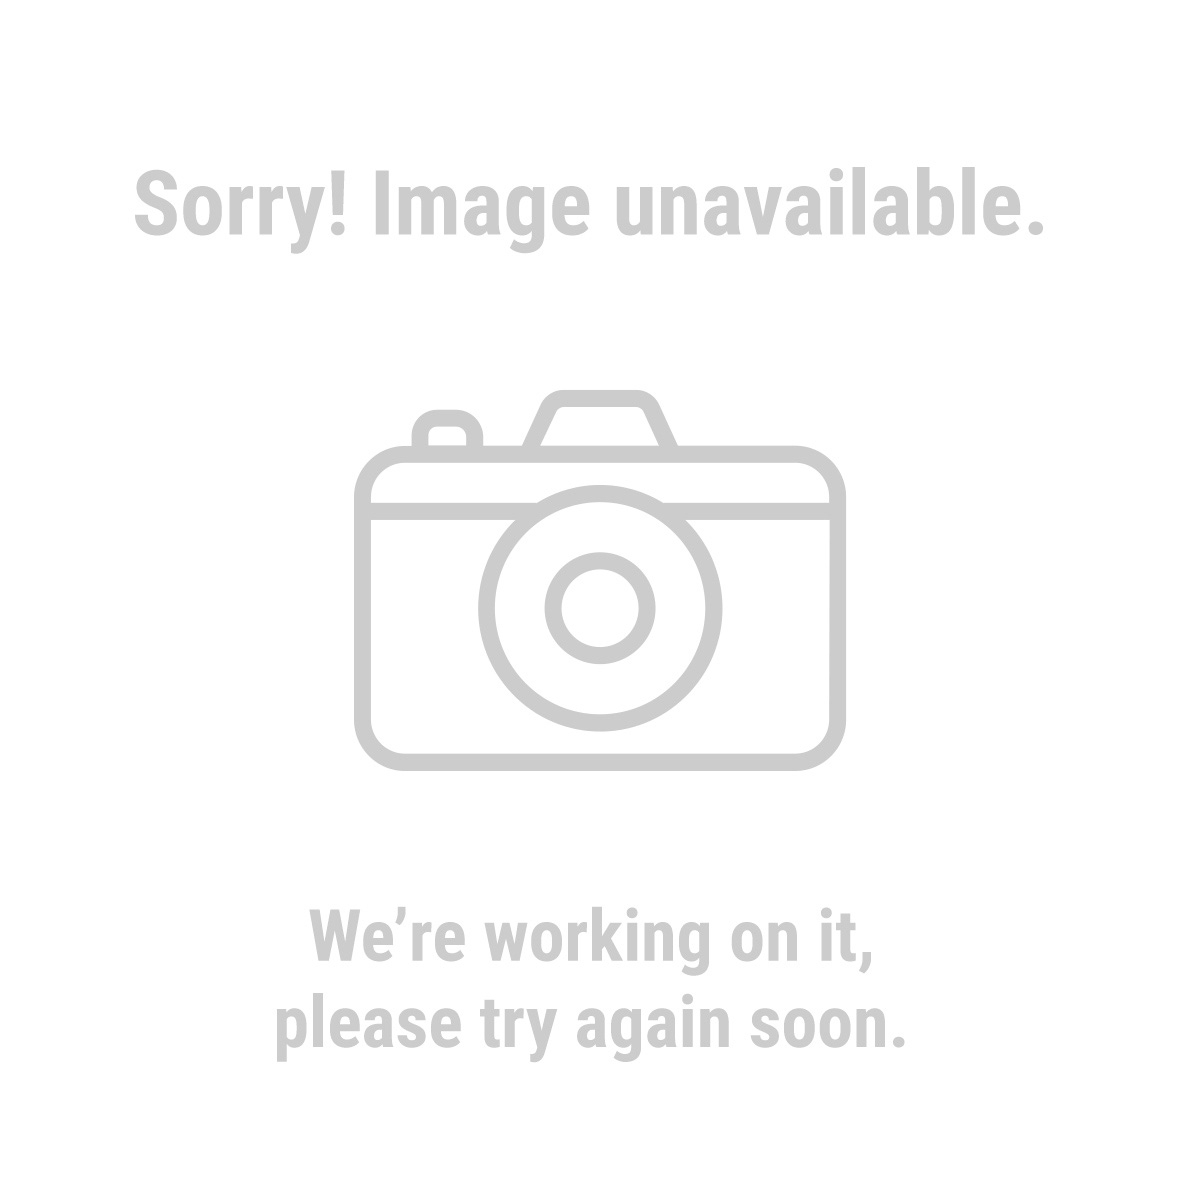 Central Machinery 34924 12 Ton Jack Stands